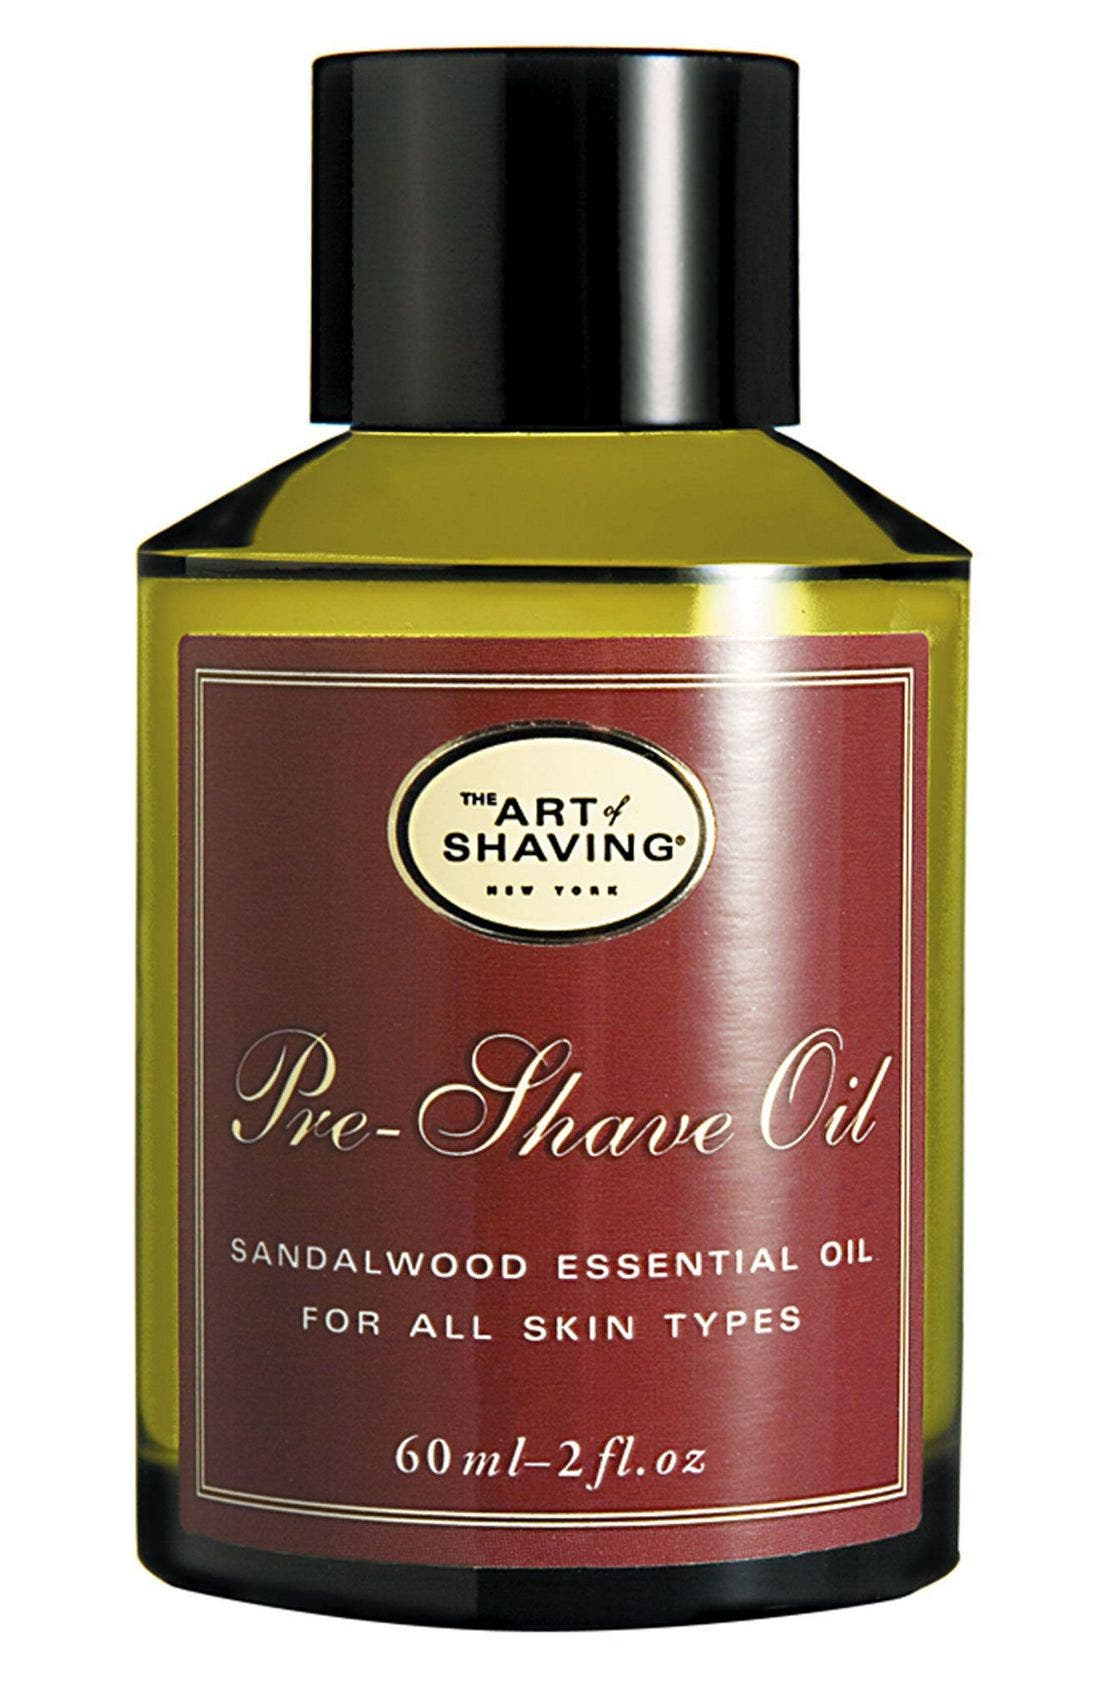 The Art of Shaving® Sandalwood Pre-Shave Oil